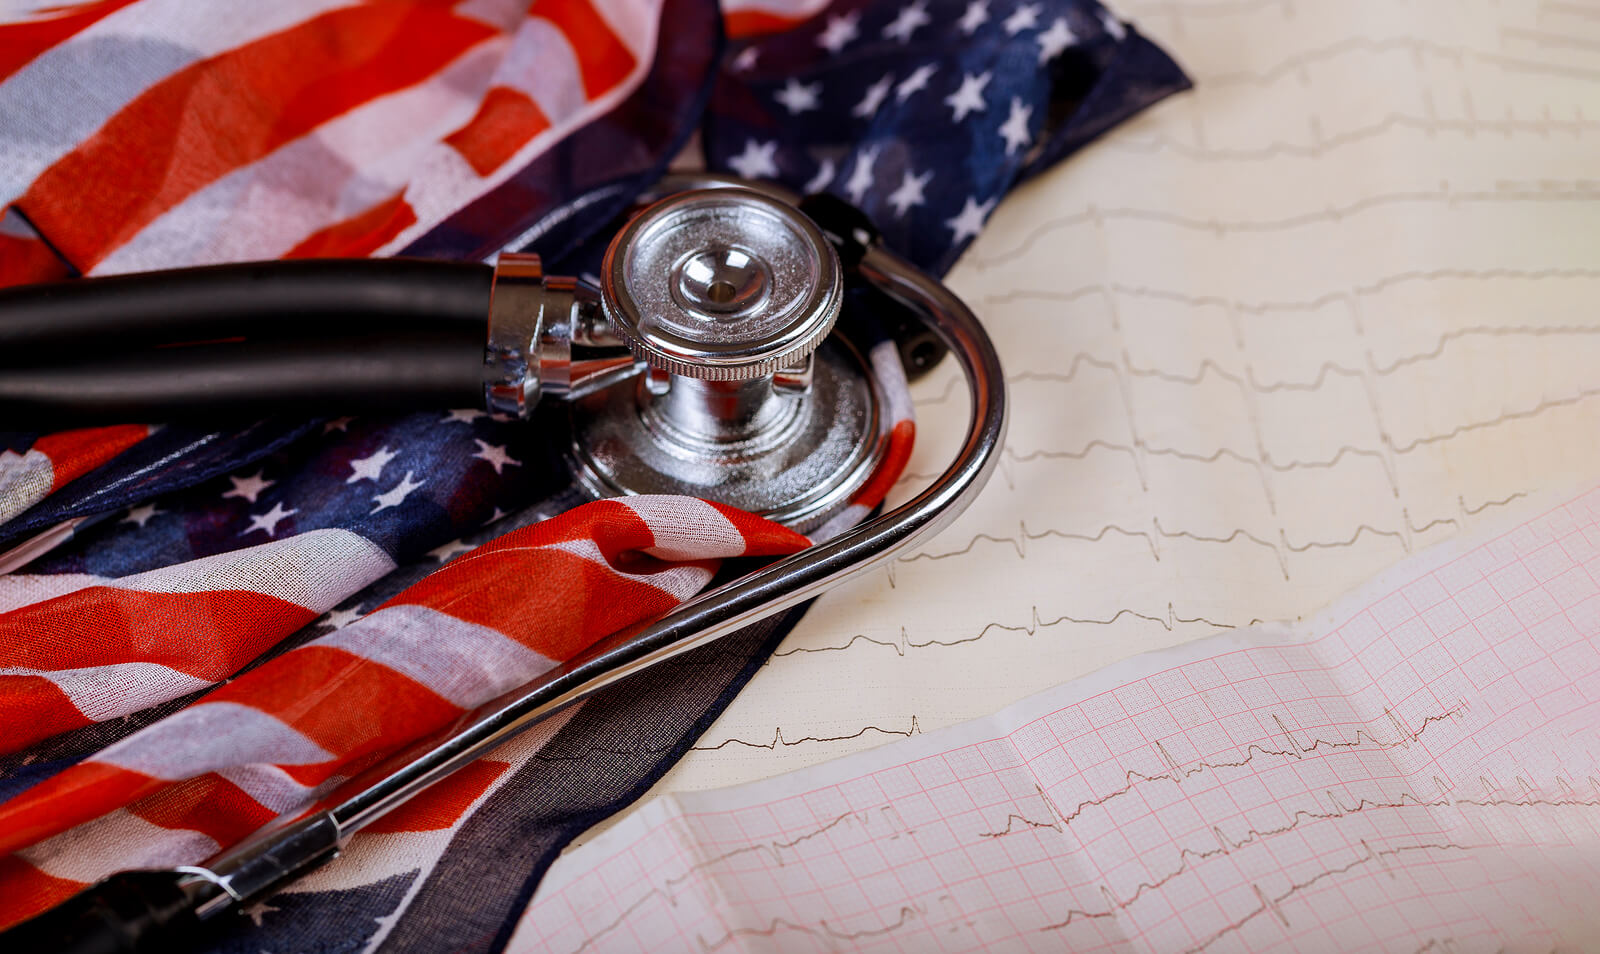 Stethoscope with US Flag